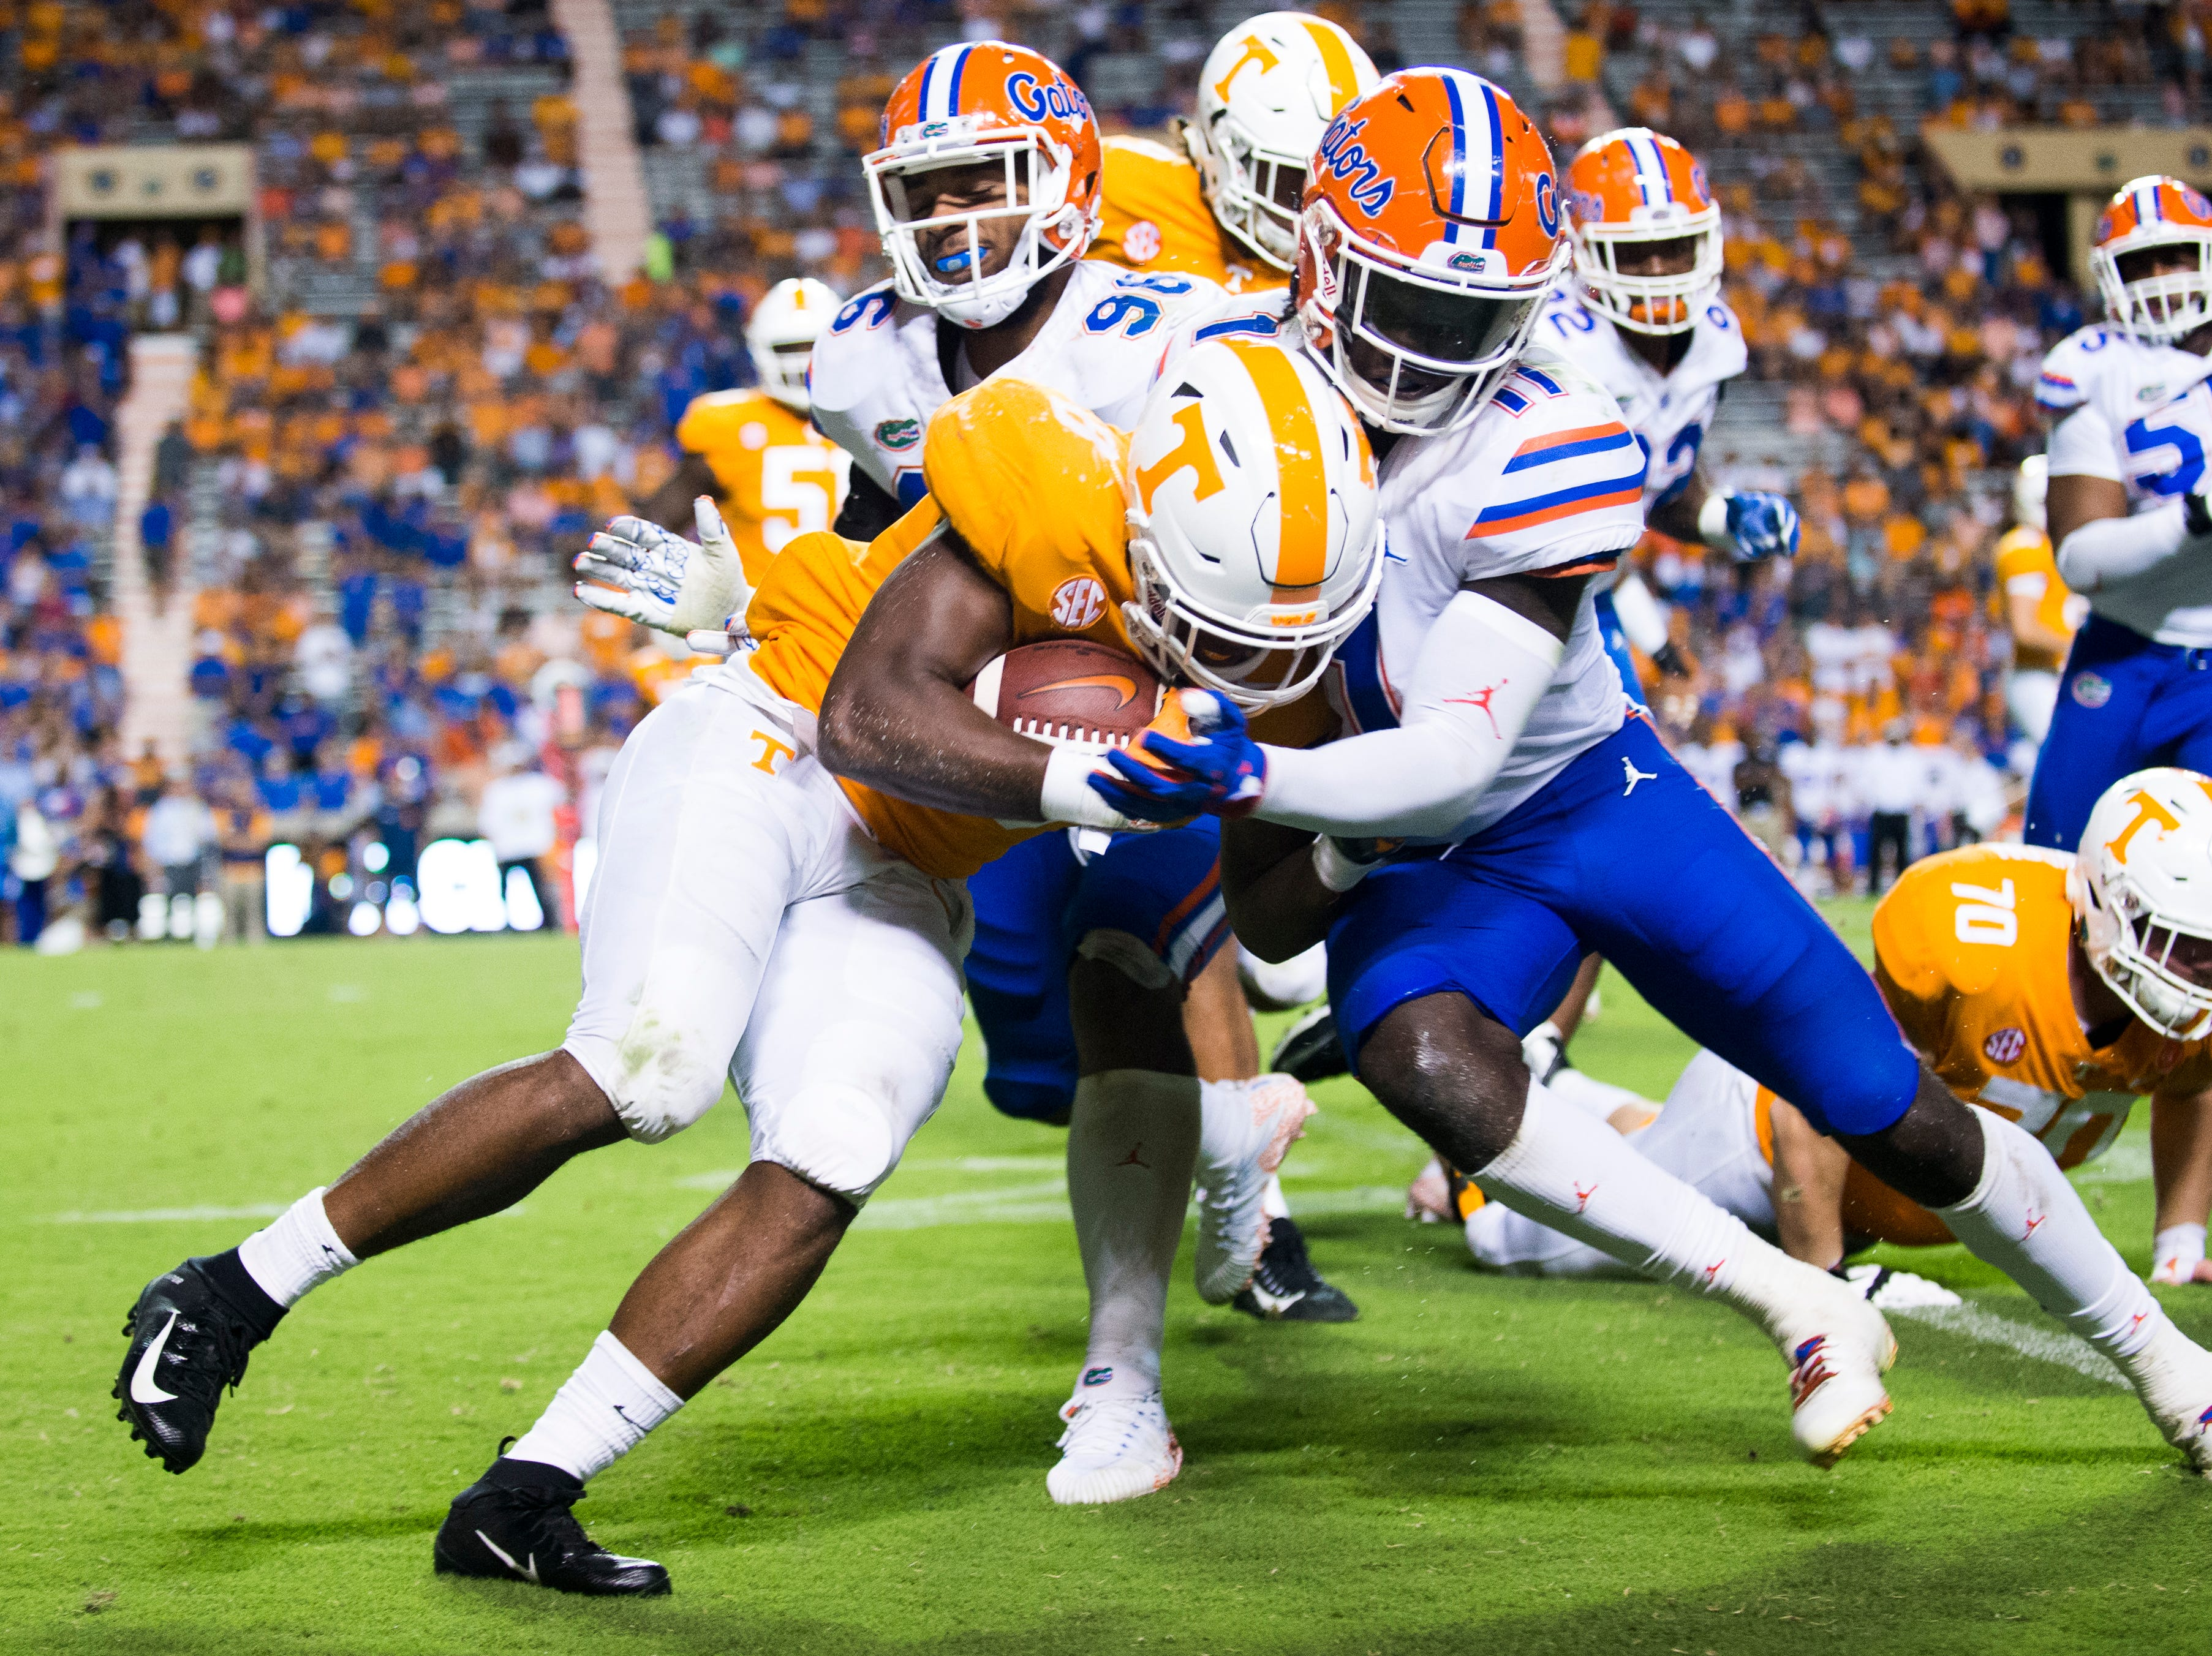 Tennessee running back Ty Chandler (8) is knocked out of bounds by Florida linebacker Vosean Joseph (11) during a game between Tennessee and Florida at Neyland Stadium in Knoxville, Tennessee on Saturday, September 22, 2018.